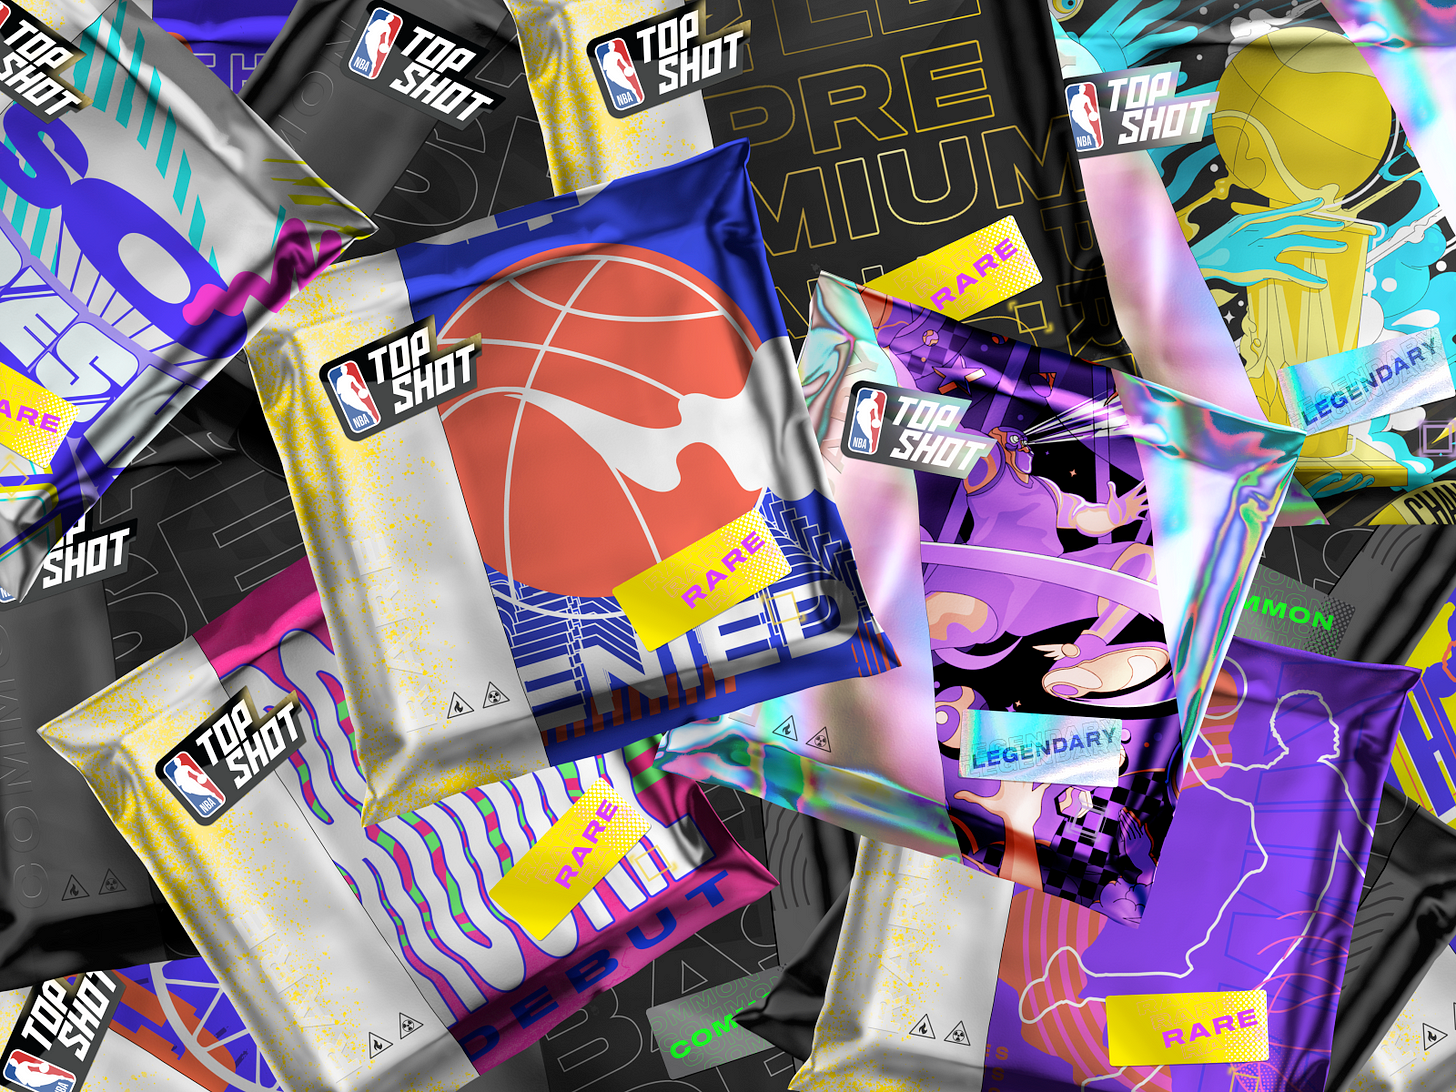 NBA Top Shot - Packs by Dapper Labs on Dribbble